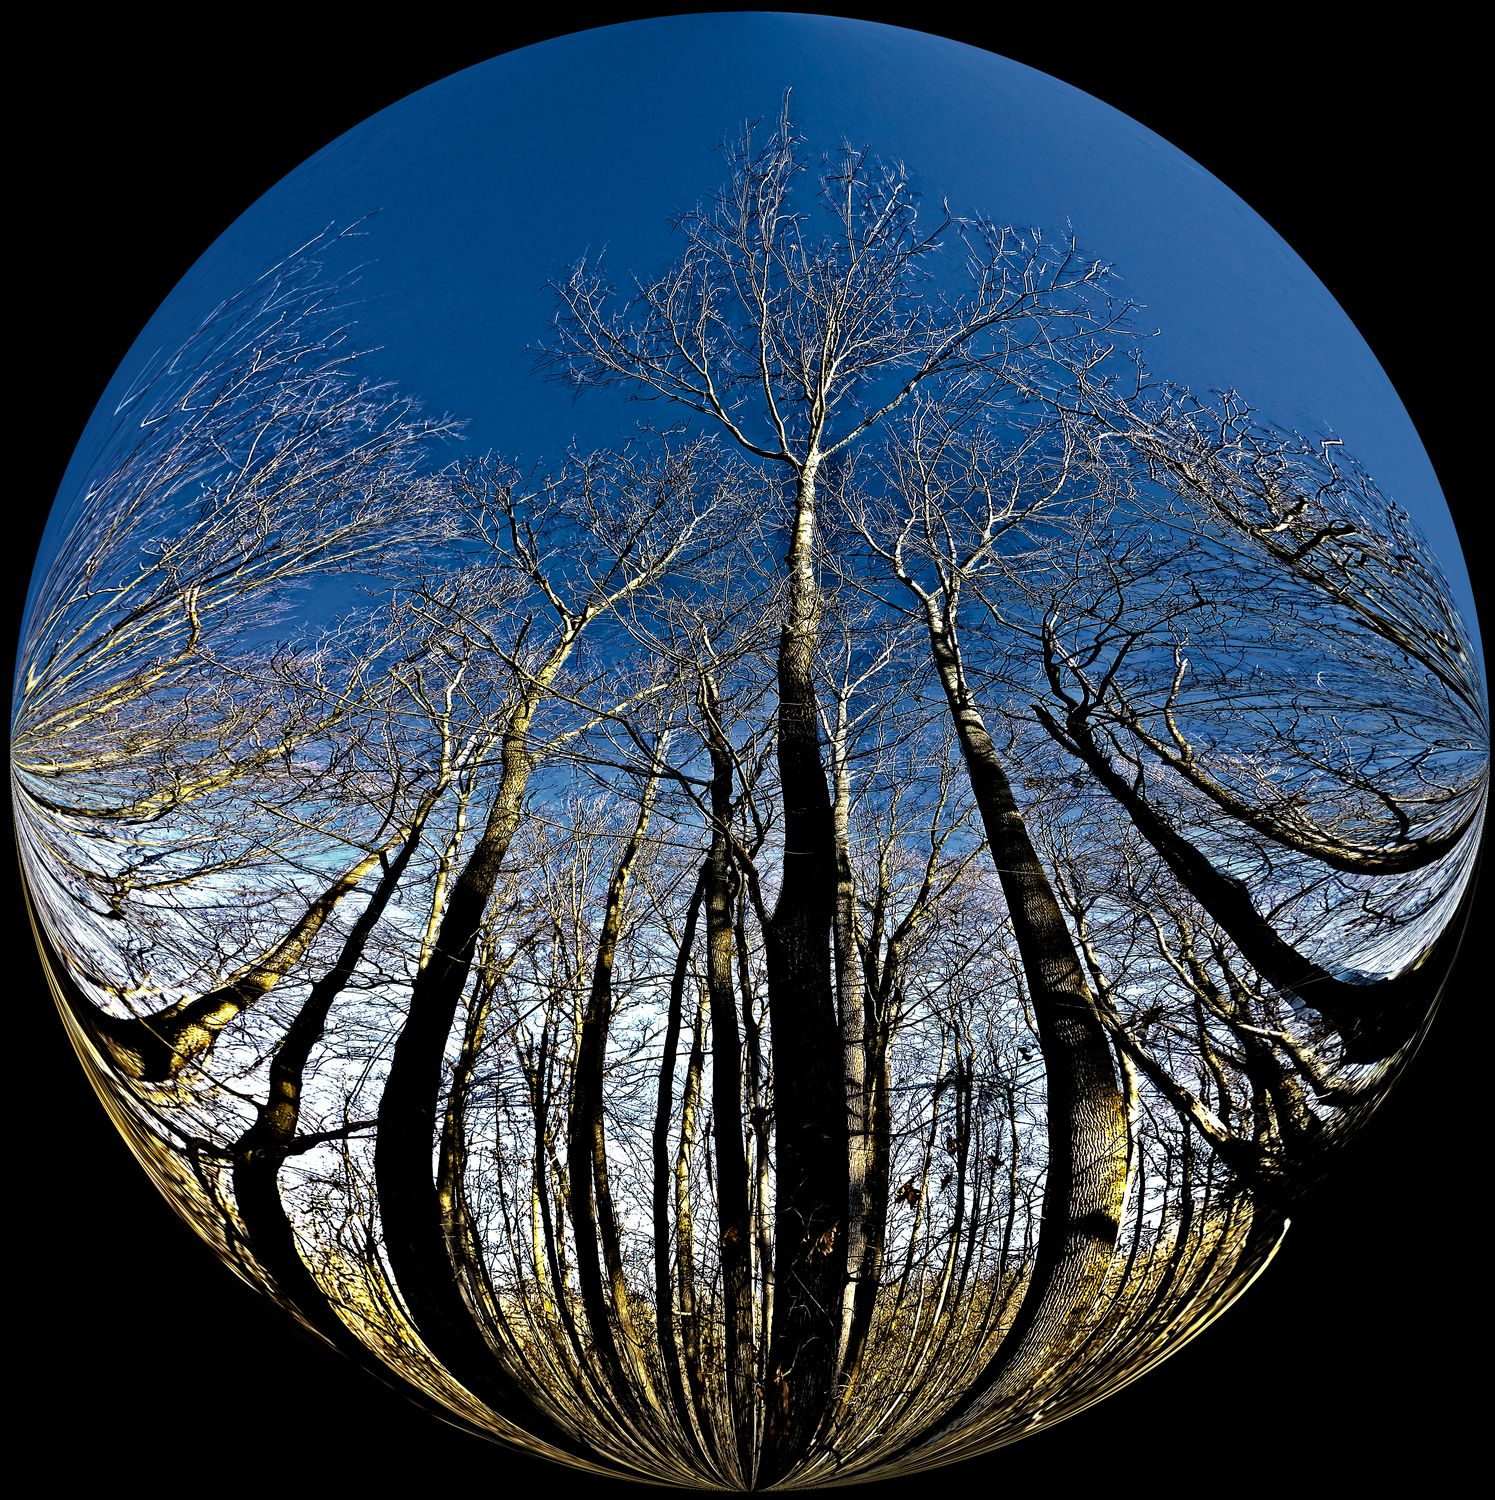 - The trees in our neighborhood exist in a bubble -  Tony Karp's Bubble Pictures - From 1959 to 2013 - Tony Karp, design, art, photography, techno-impressionist, techno-impressionism, aerial photography , drone , drones , dji , mavic pro , video , 3D printing - Books -